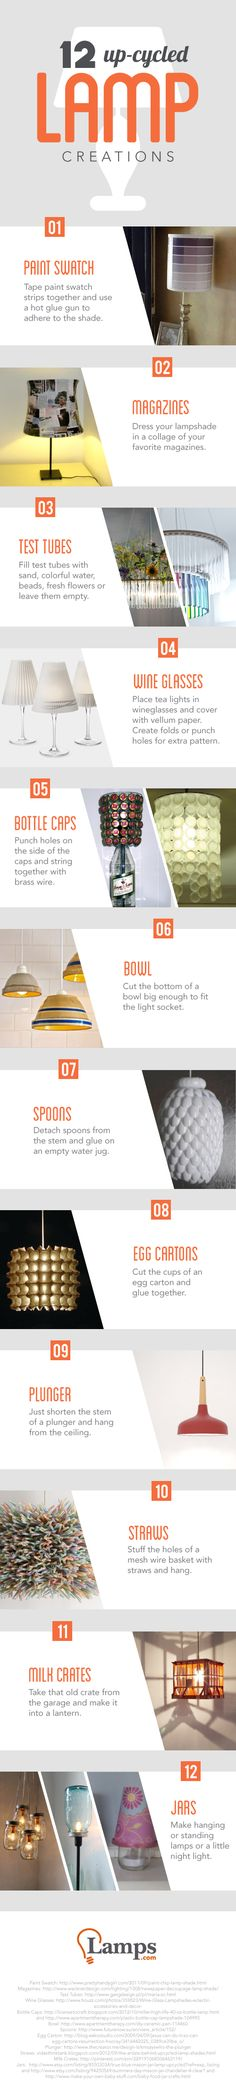 Upcycle Lamps By Lamps.com